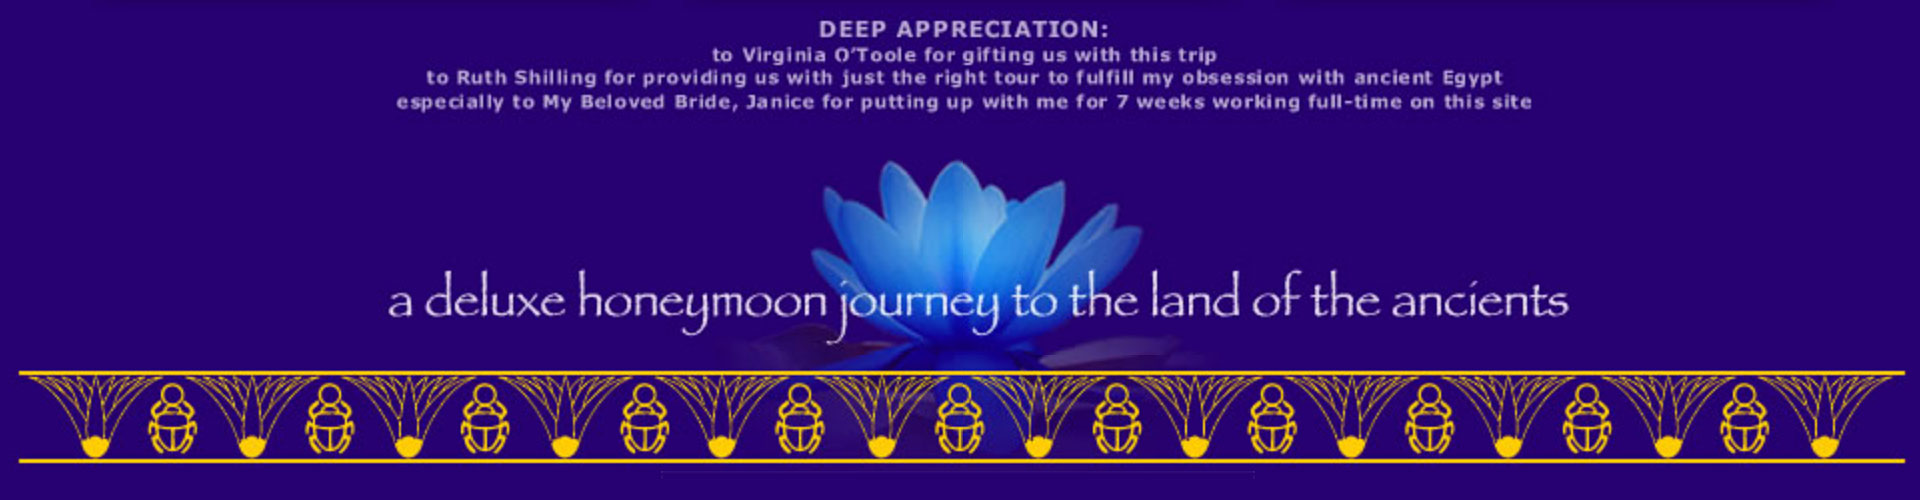 thanks to Virginia O'Toole for gifting us this journey